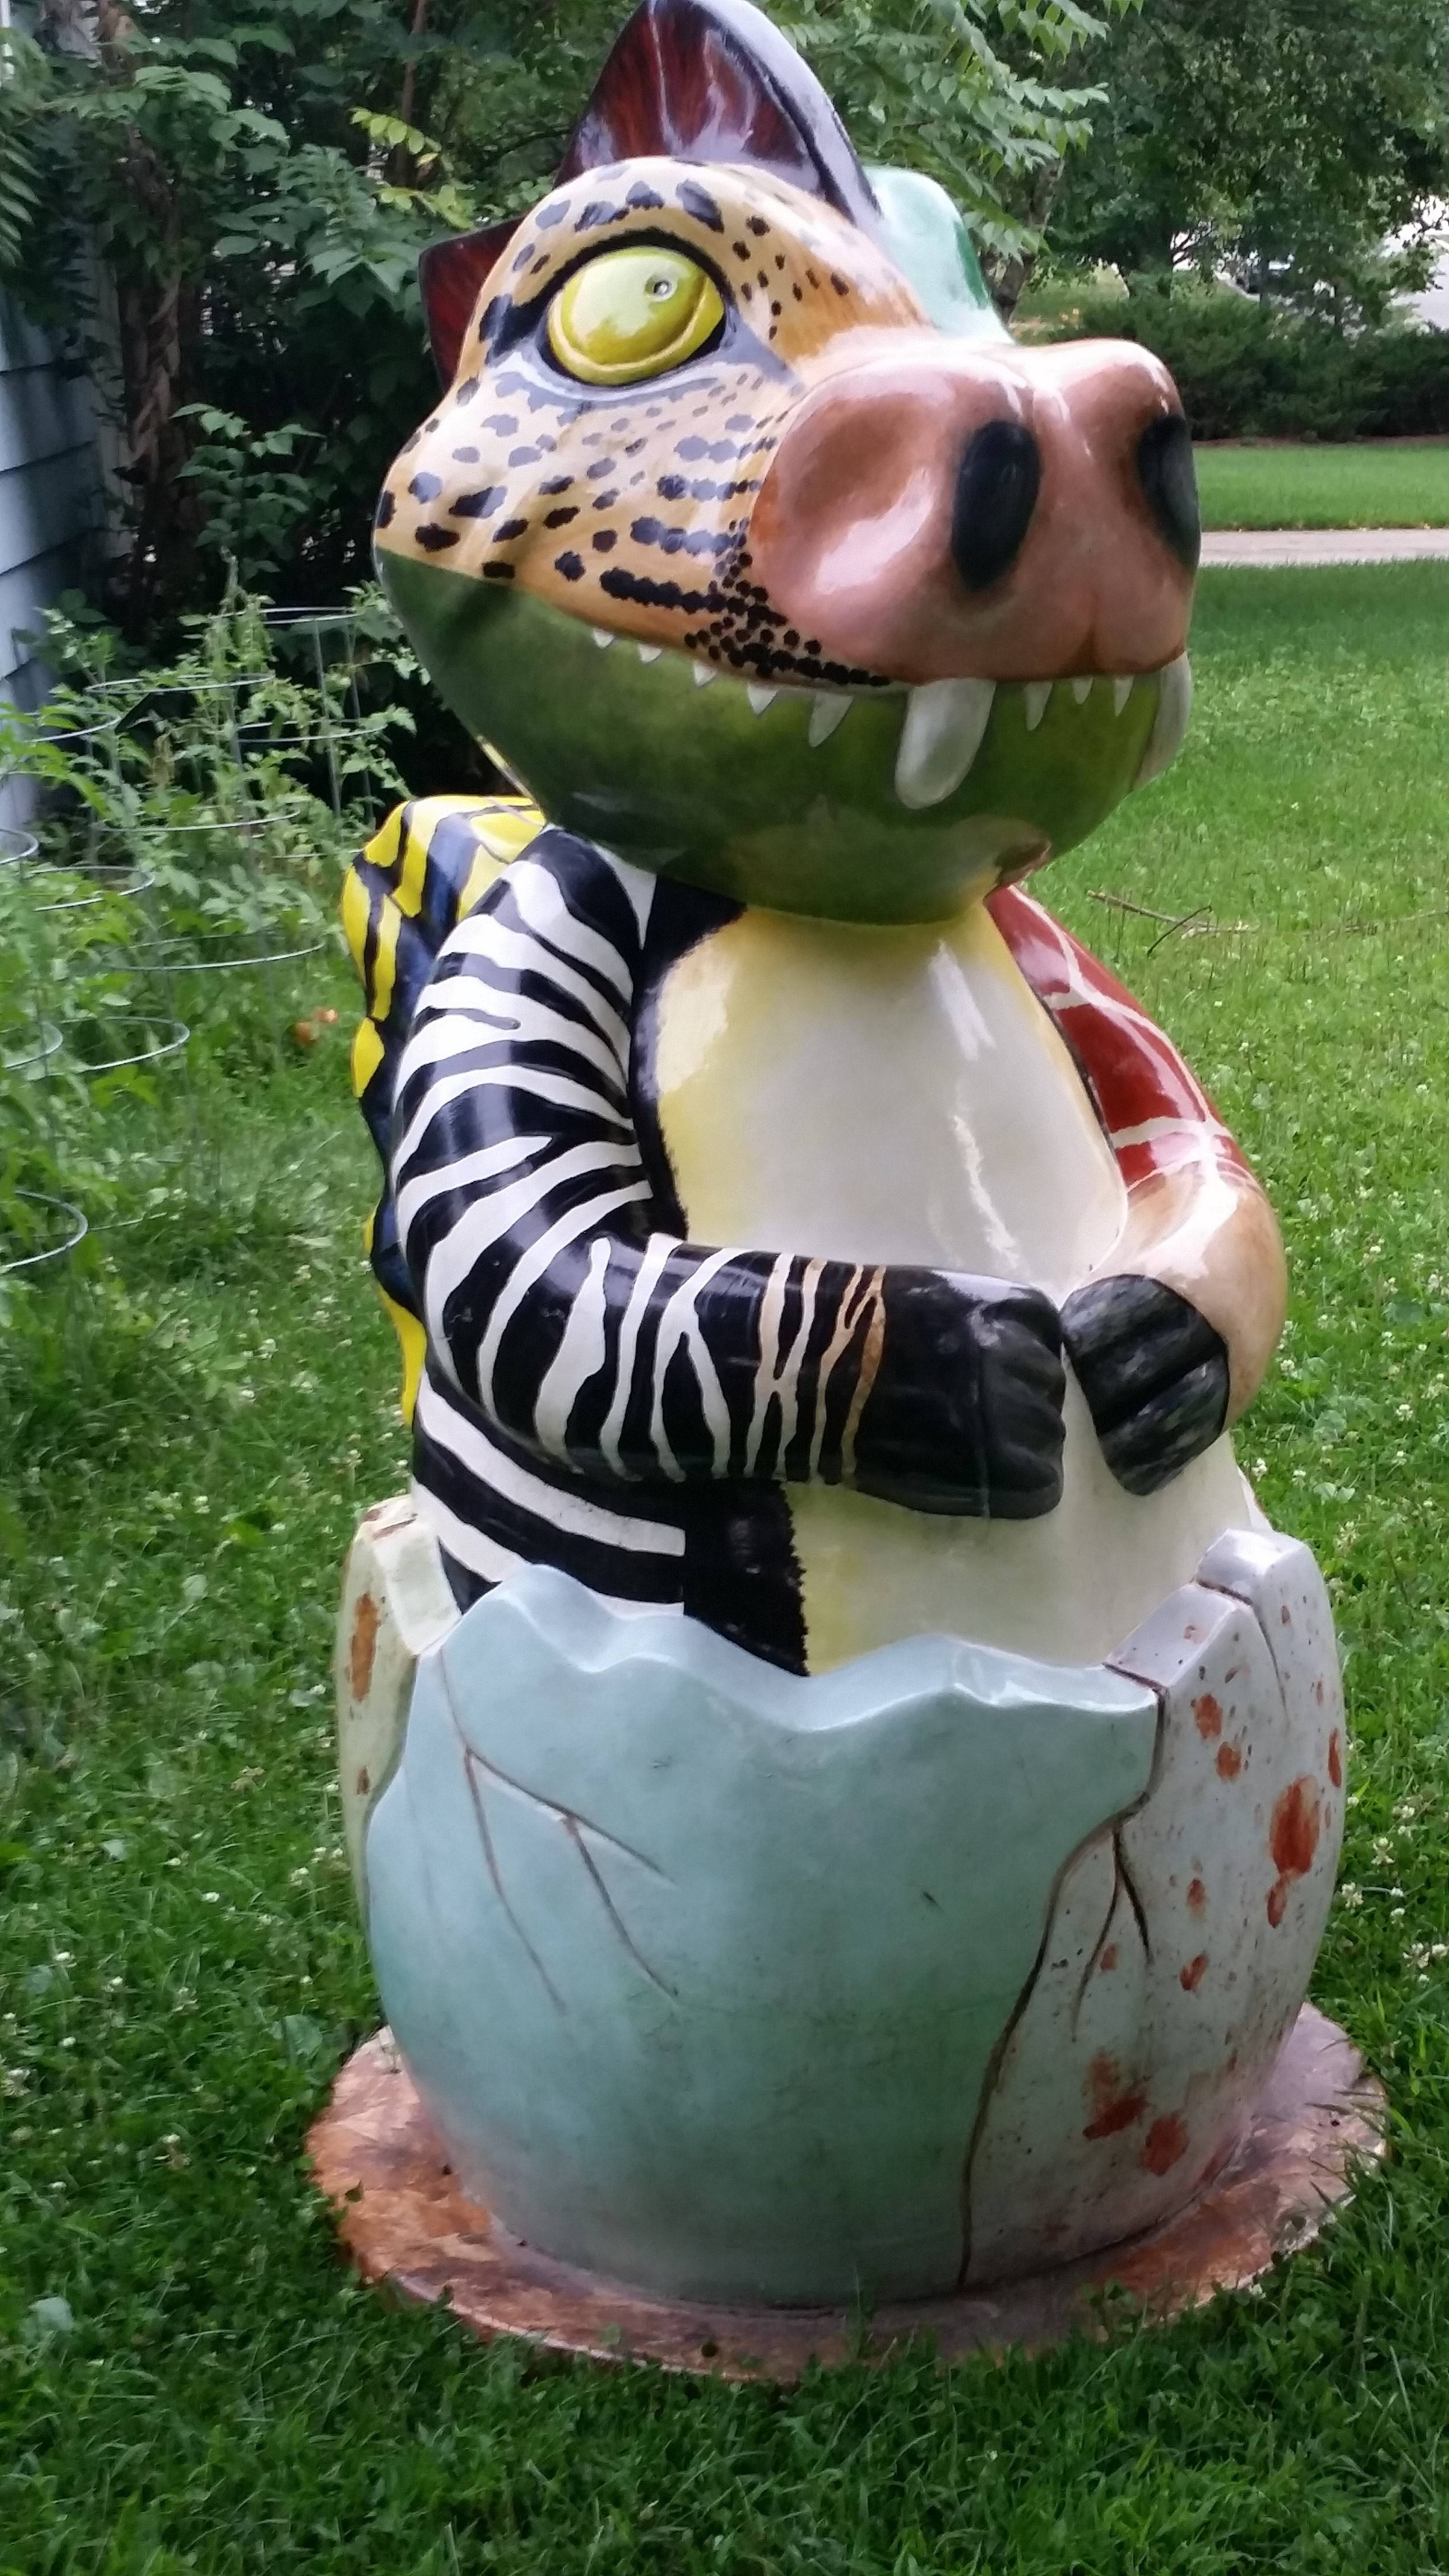 'Gaudiest' Naperville dragon sculpture reported stolen